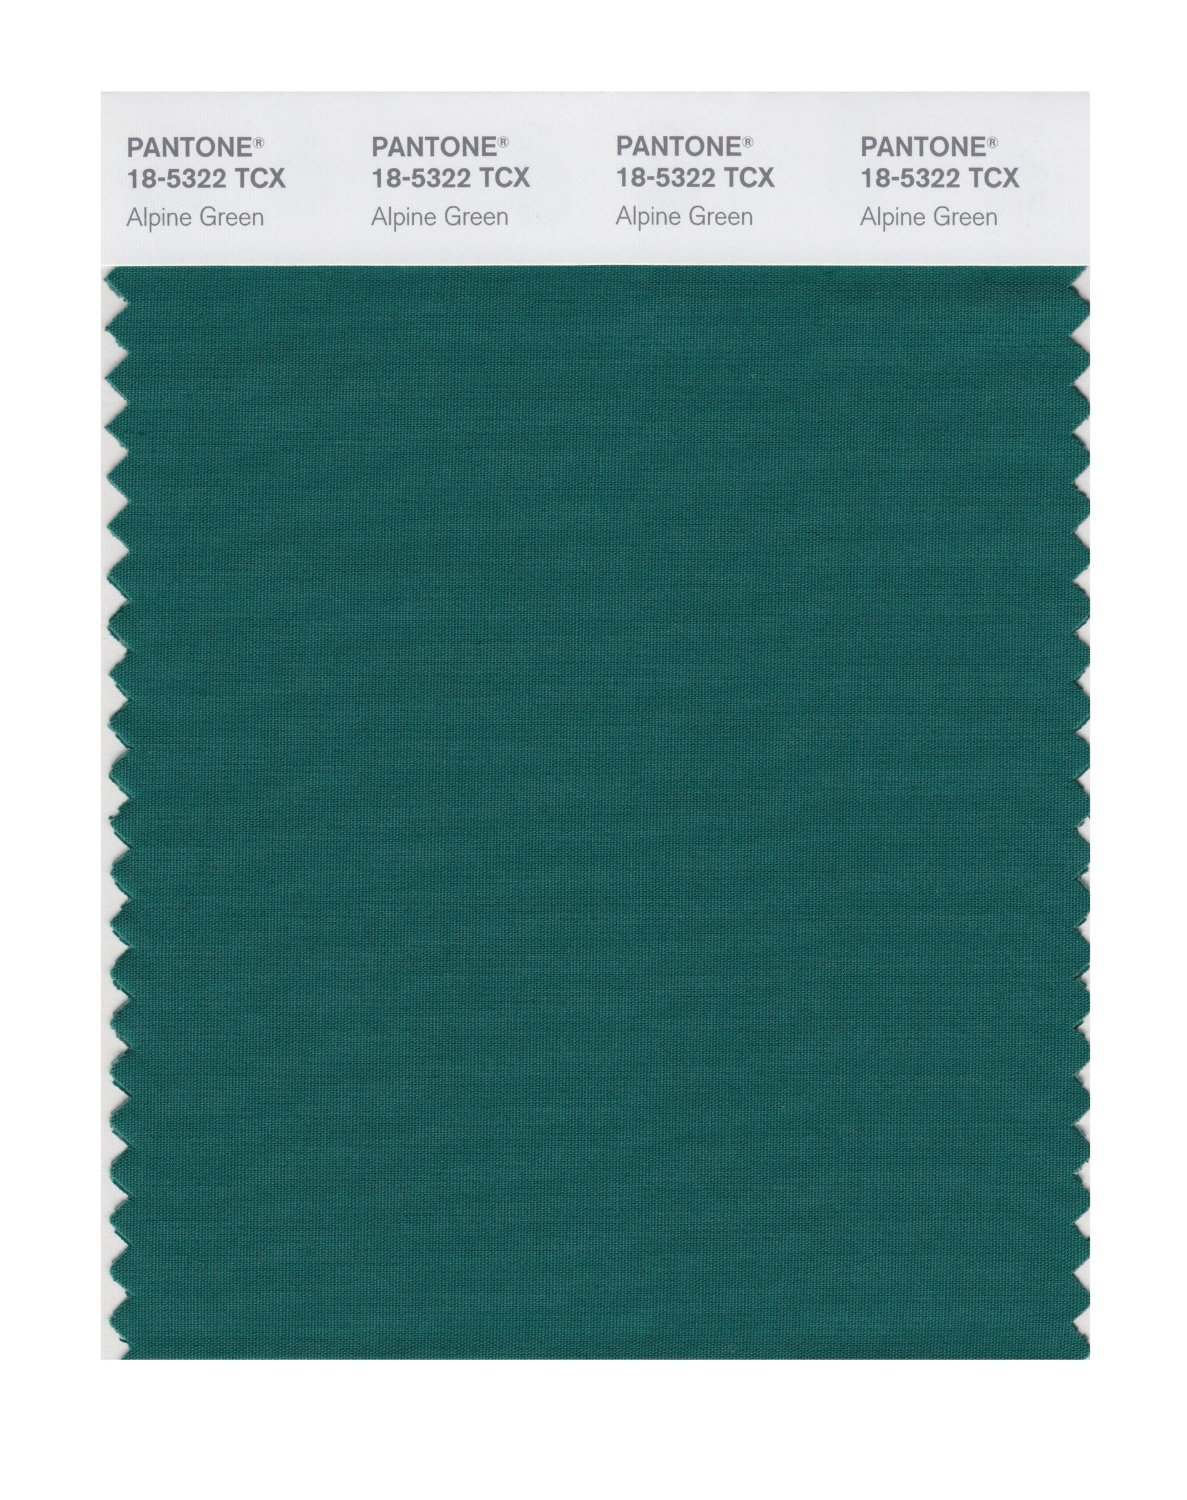 Pantone Smart Swatch 18-5322 Alpine Green